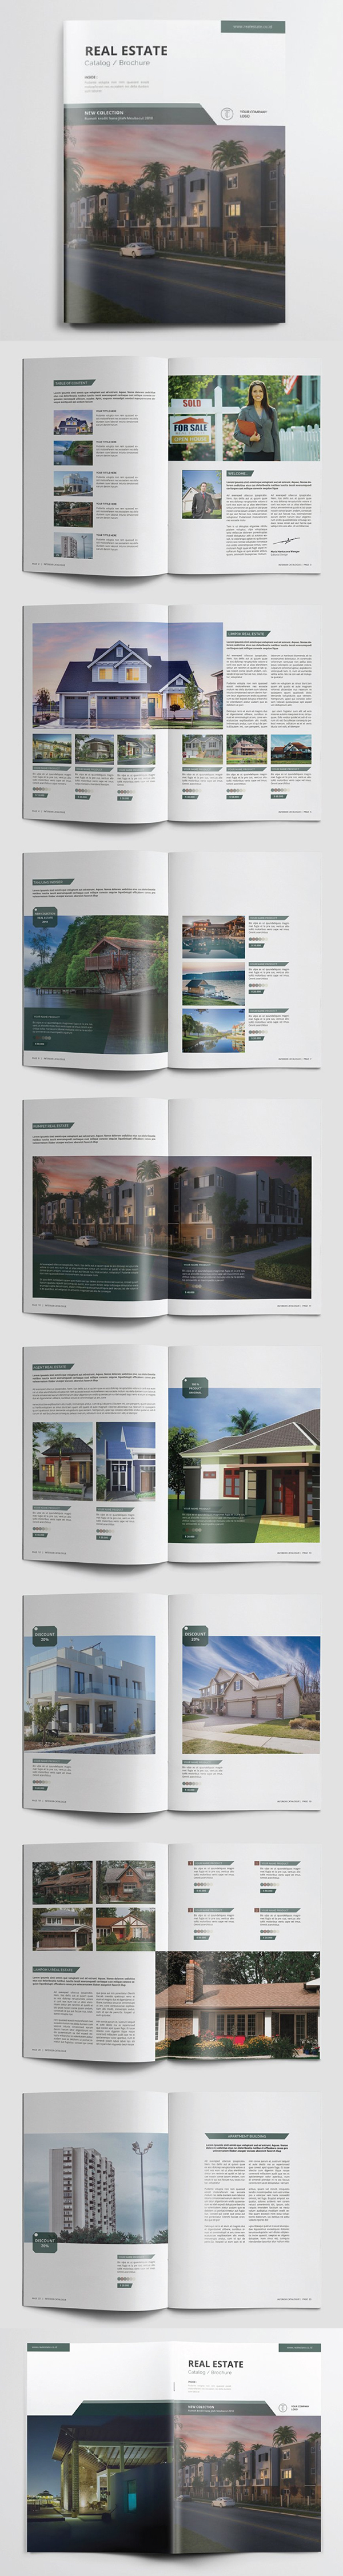 Real Estate Brochure / Catalogs Template